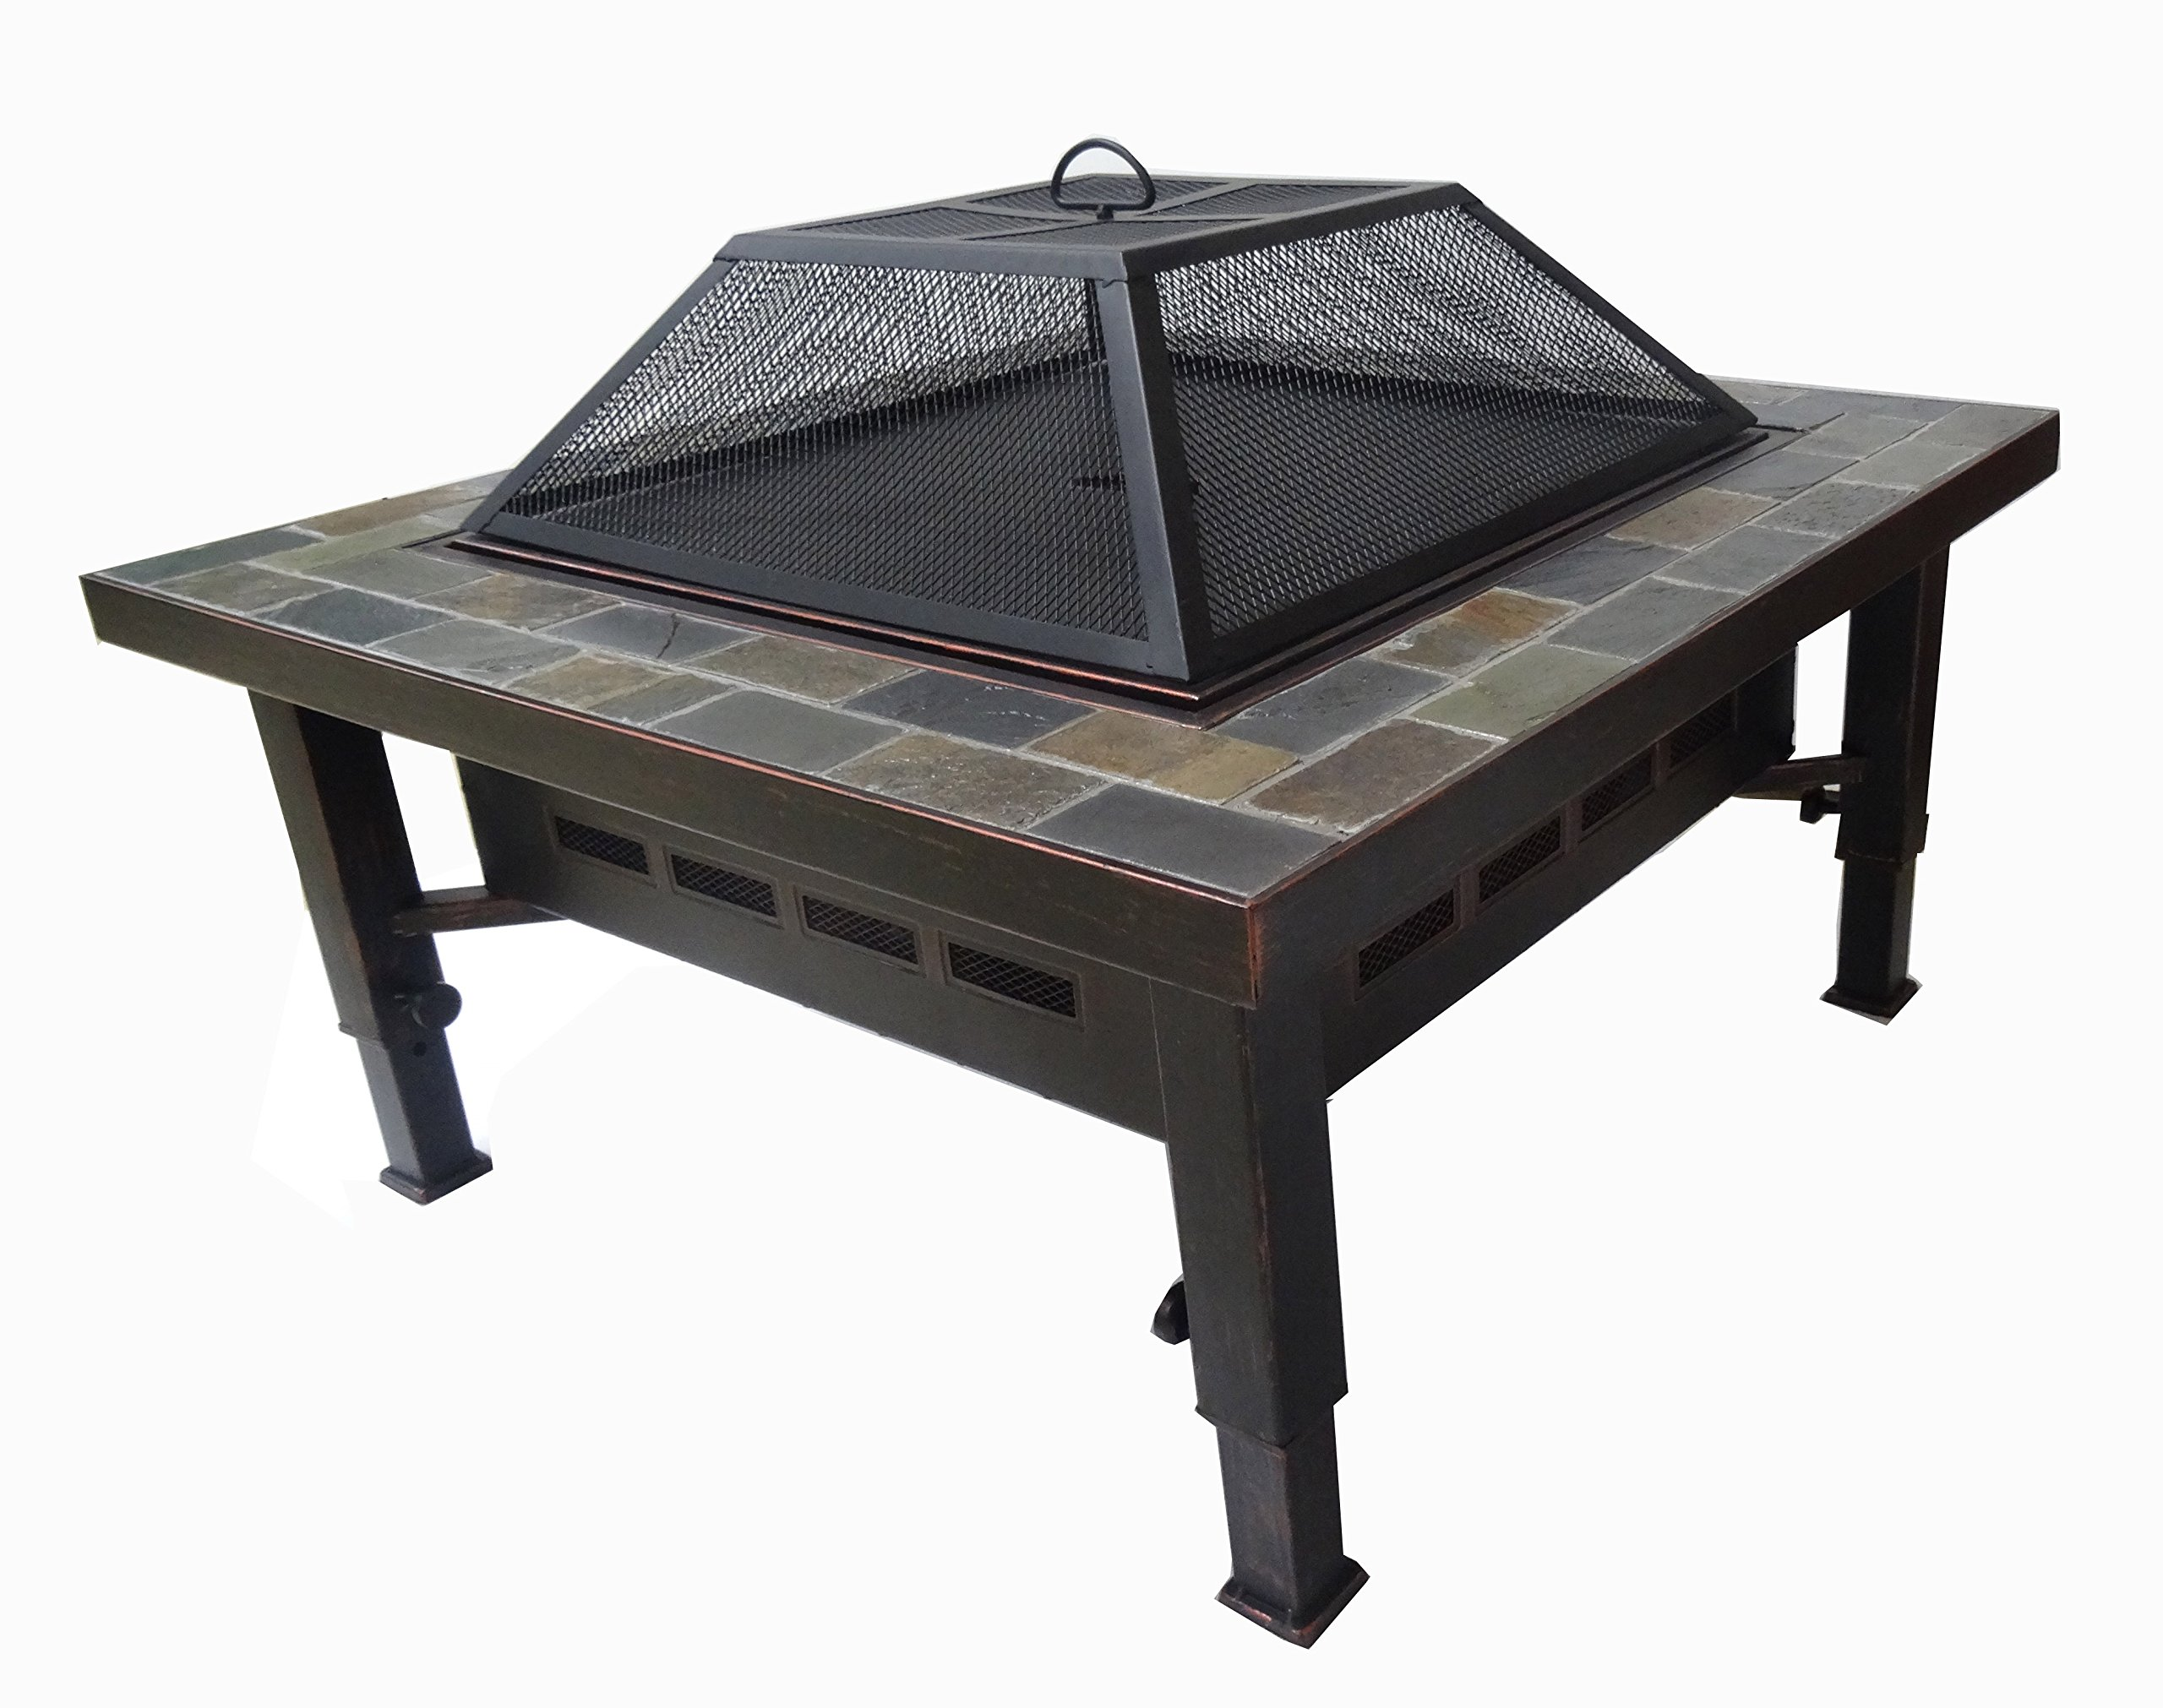 Global Outdoors 34-in Adjustable Leg Square Slate Top Fire Pit with Spark Screen, Weather Resistant Cover and Safety Poker by Global Outdoors, Inc.